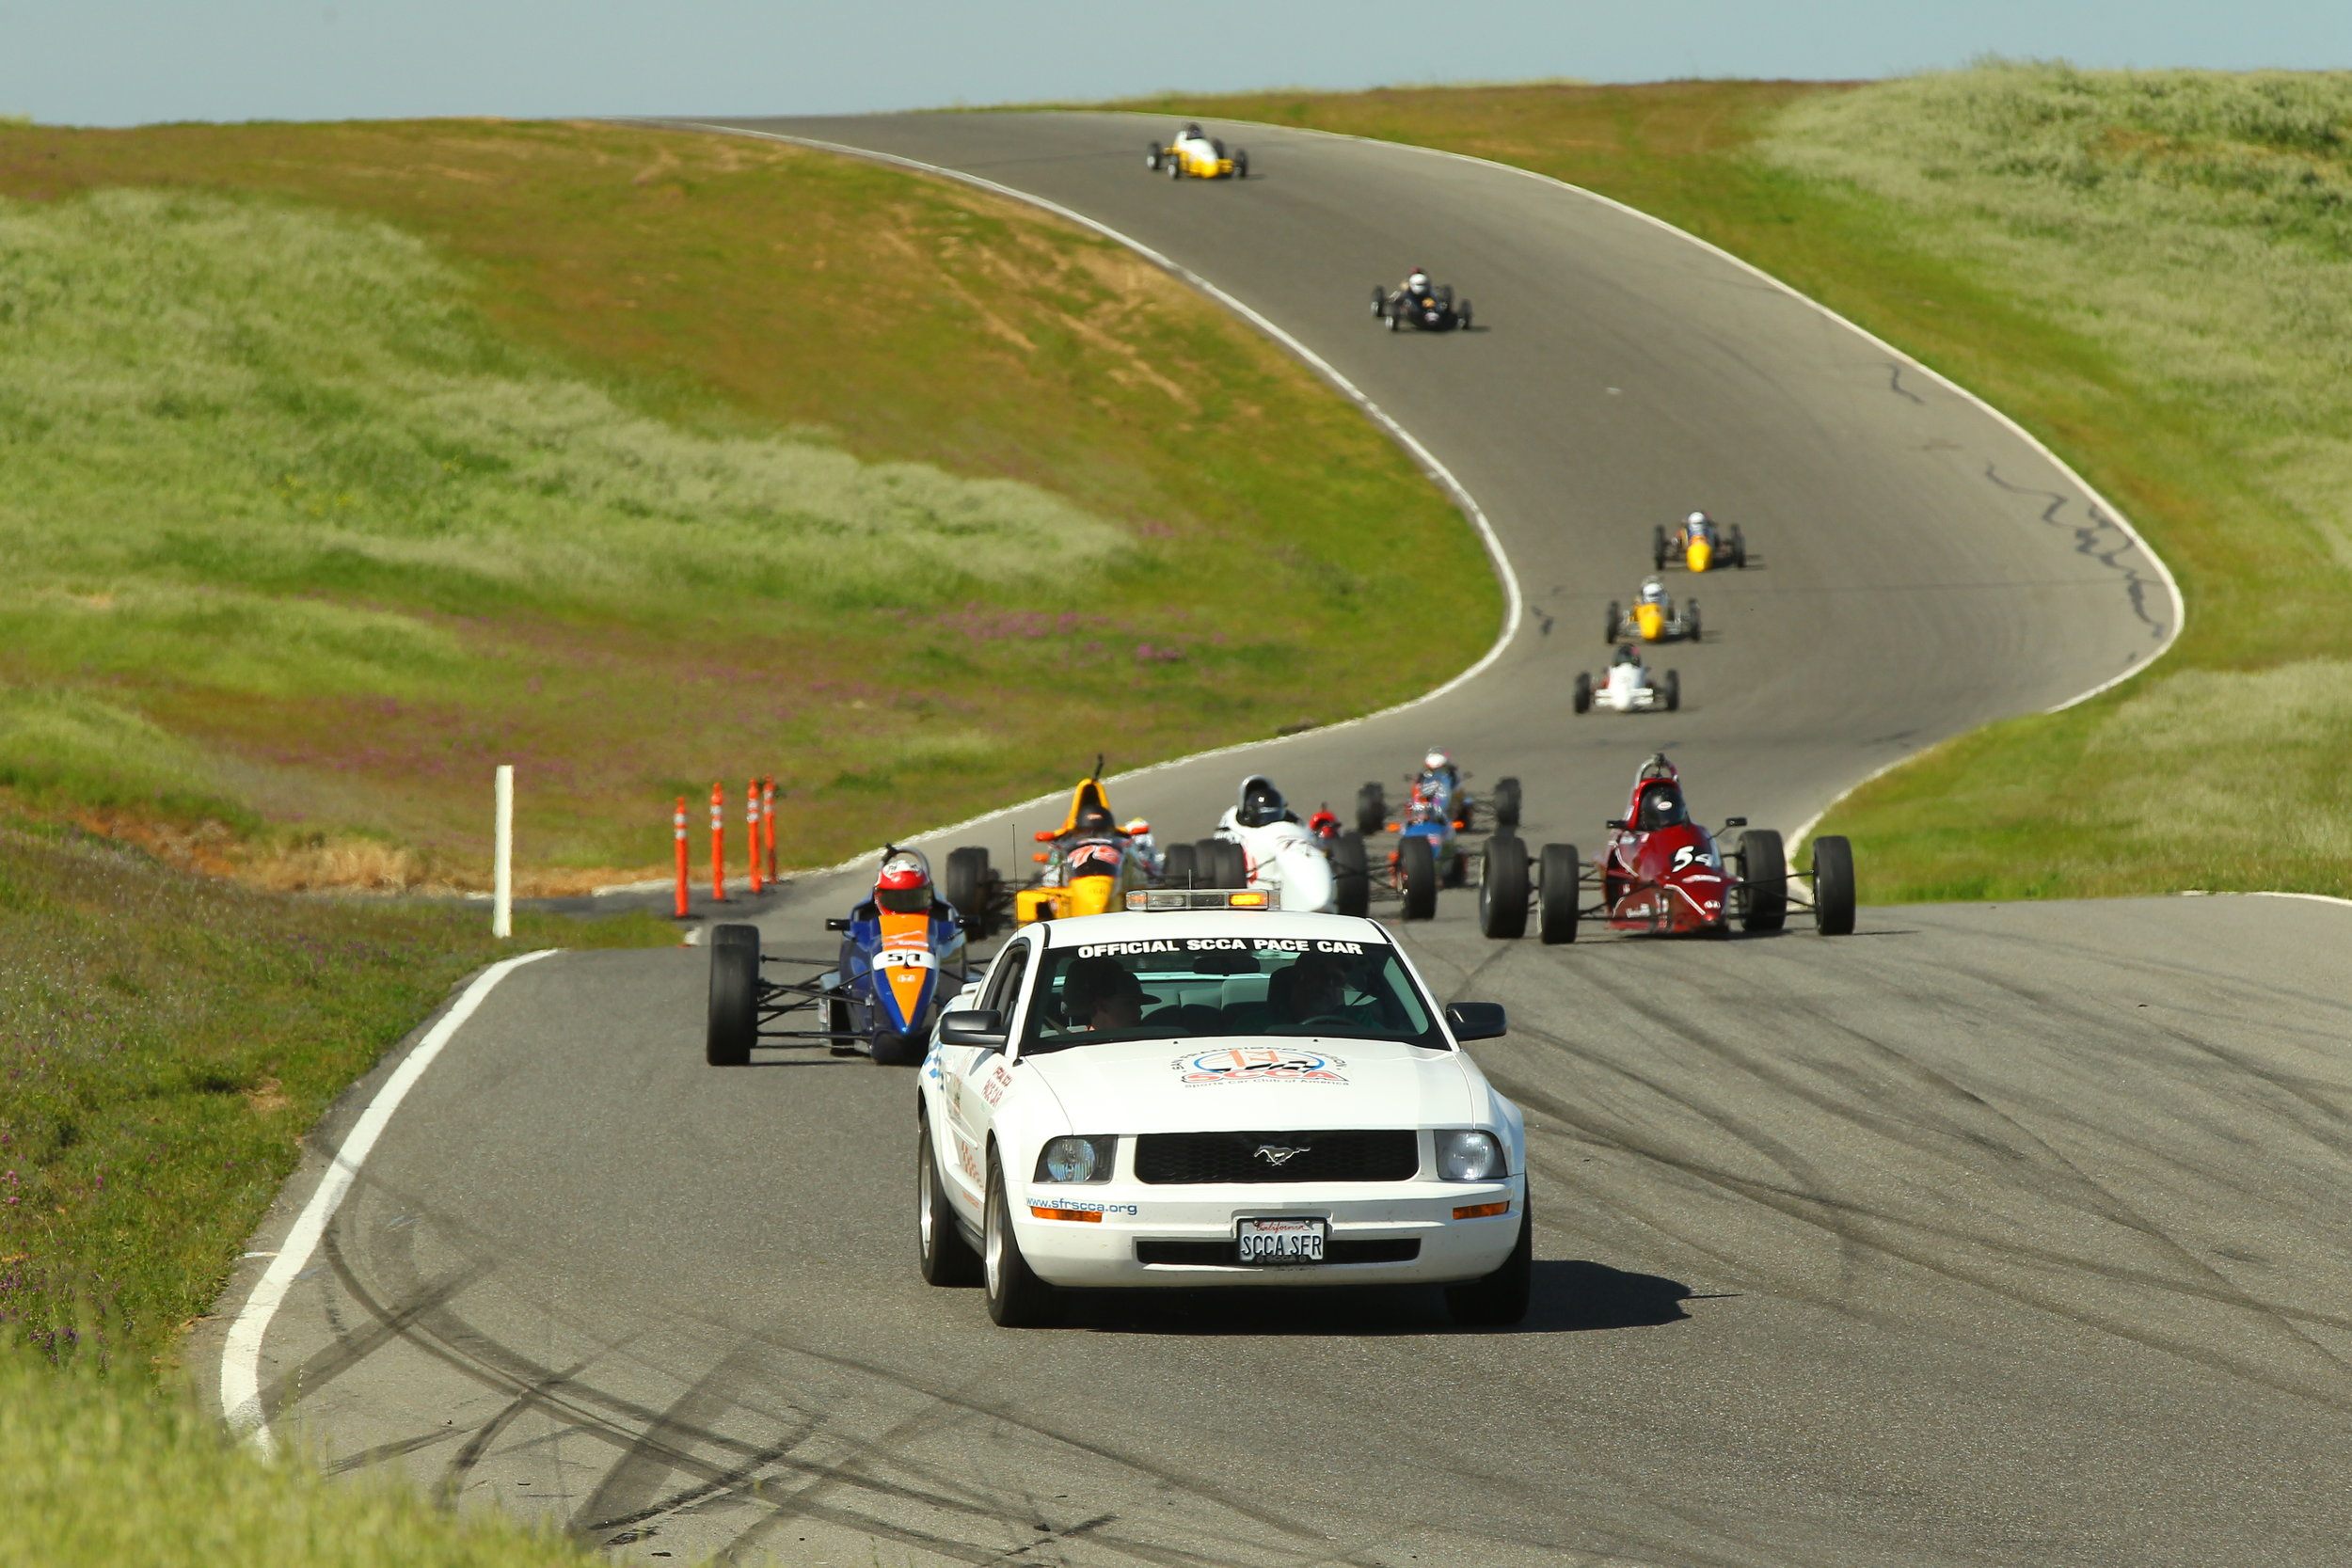 Pace lap for Sunday's race